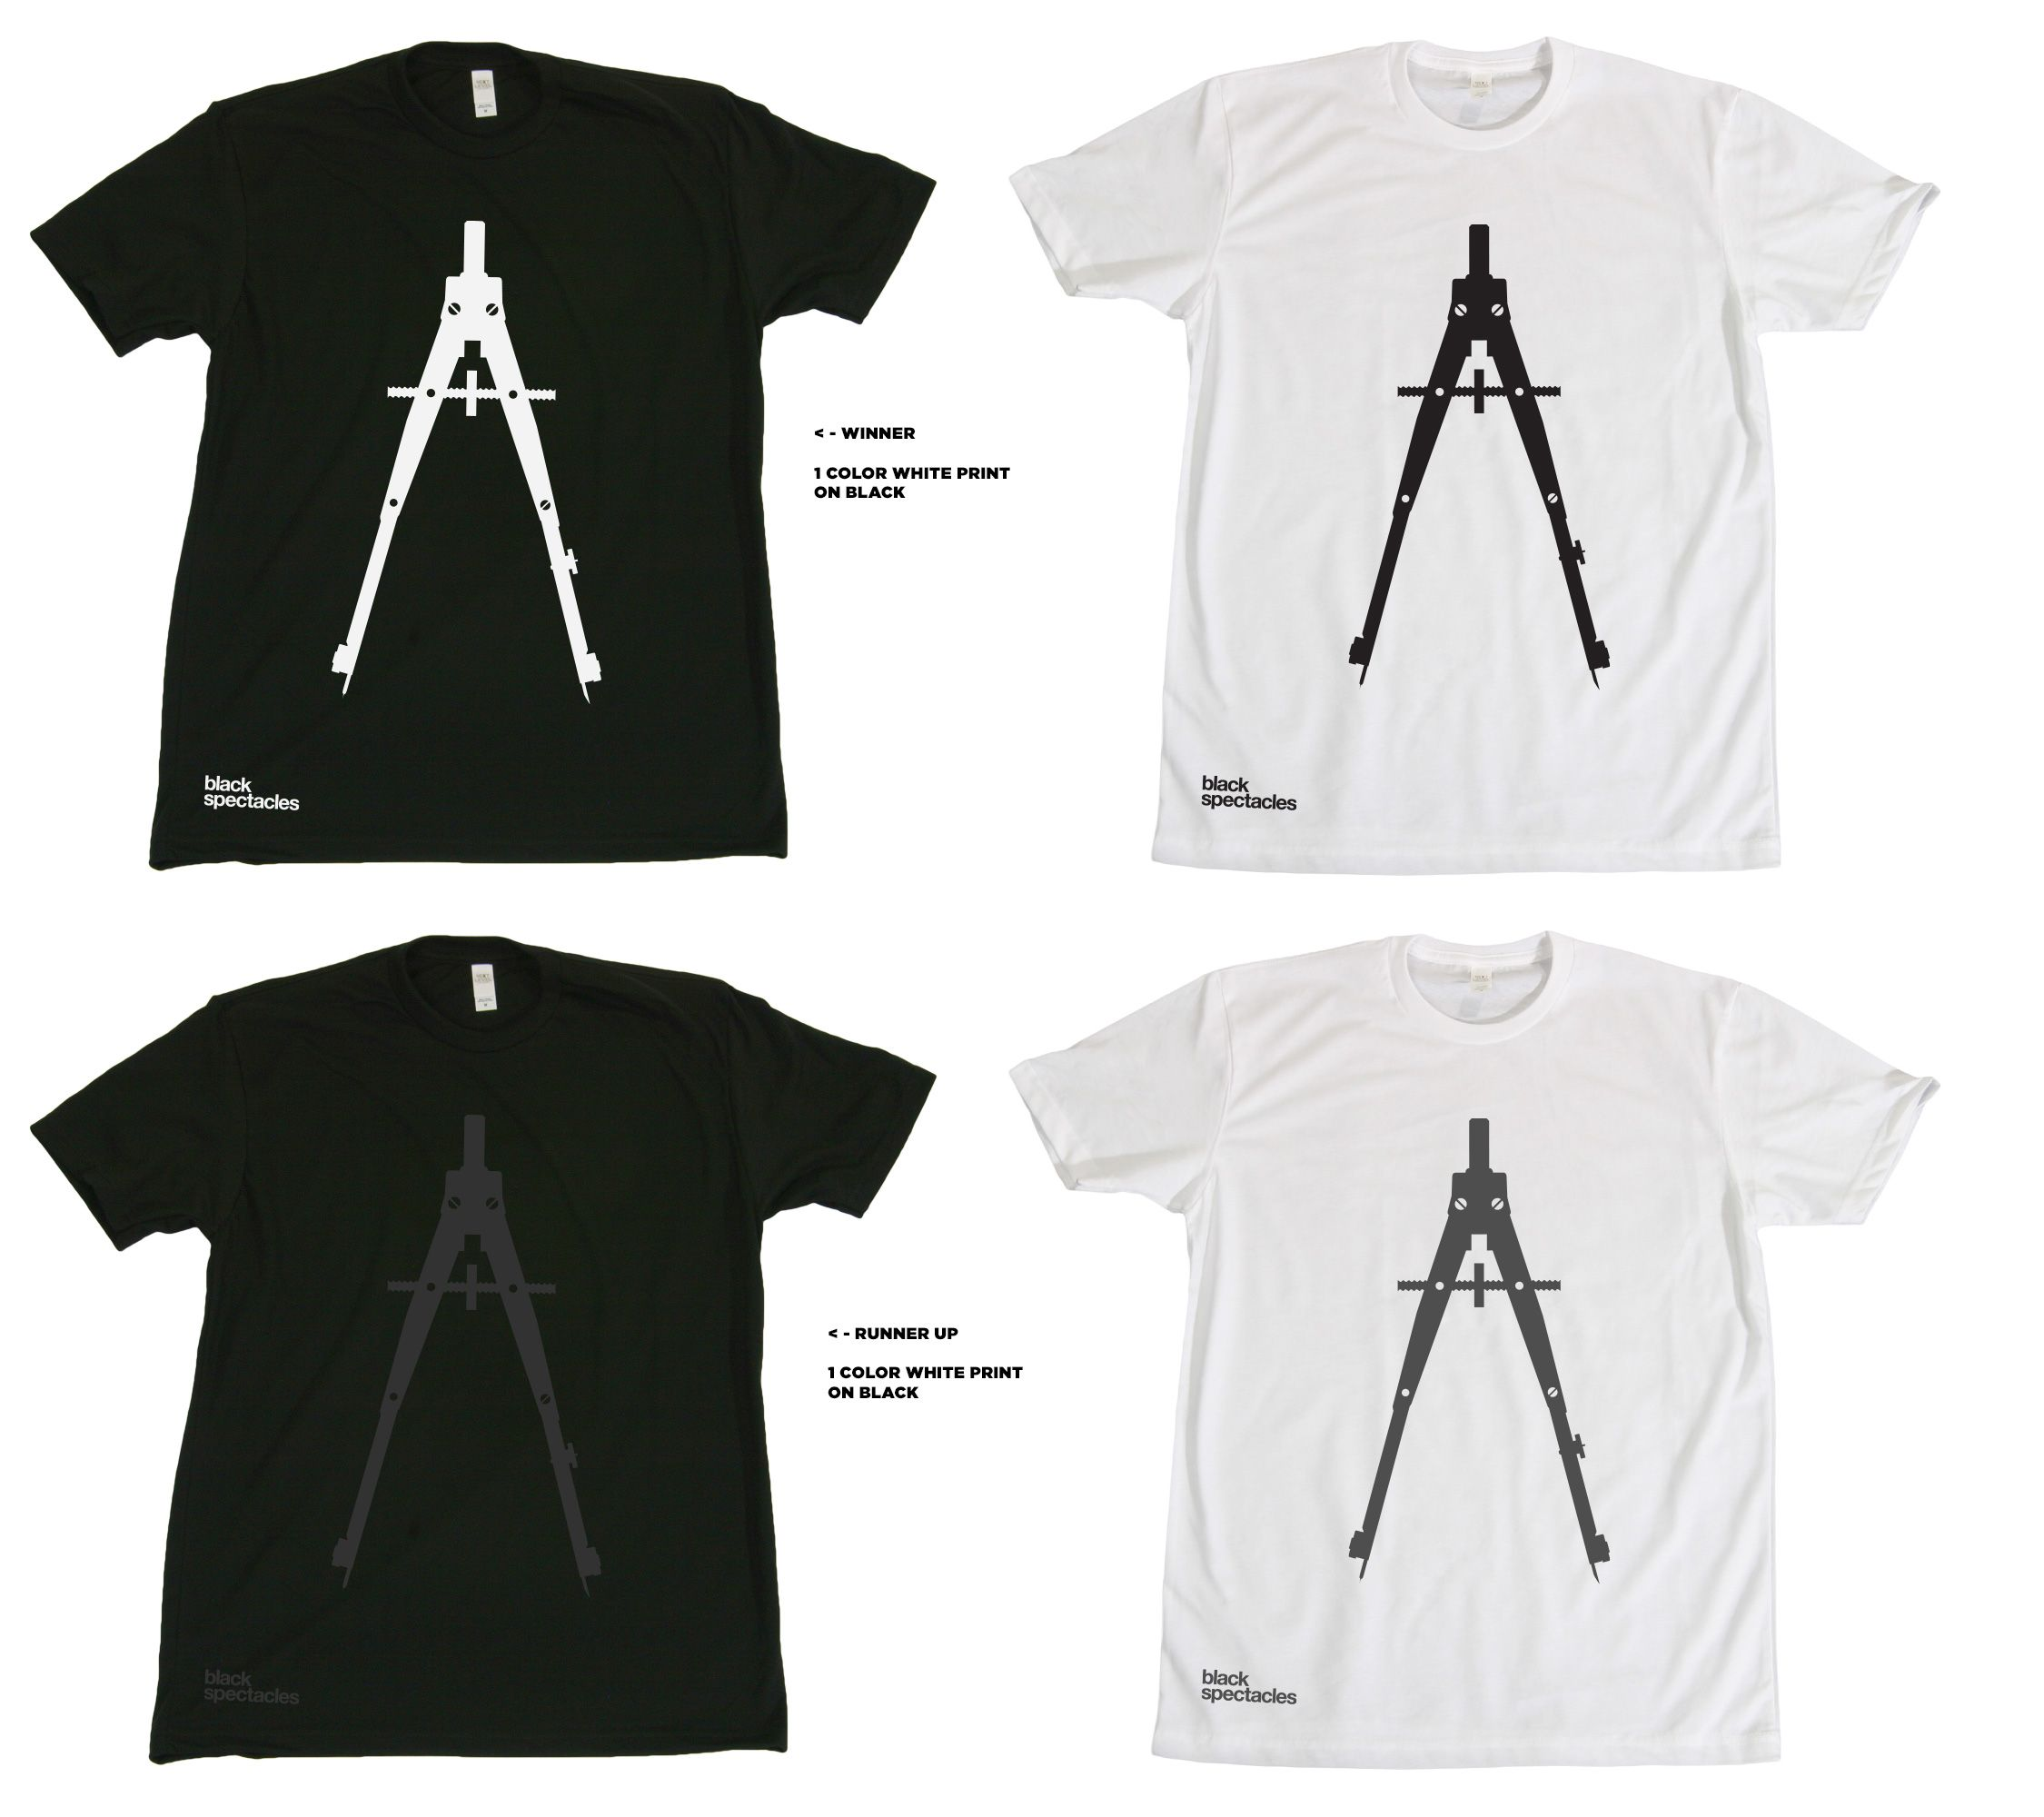 Black spectacles tshirt design architecture logo for Architecture t shirts